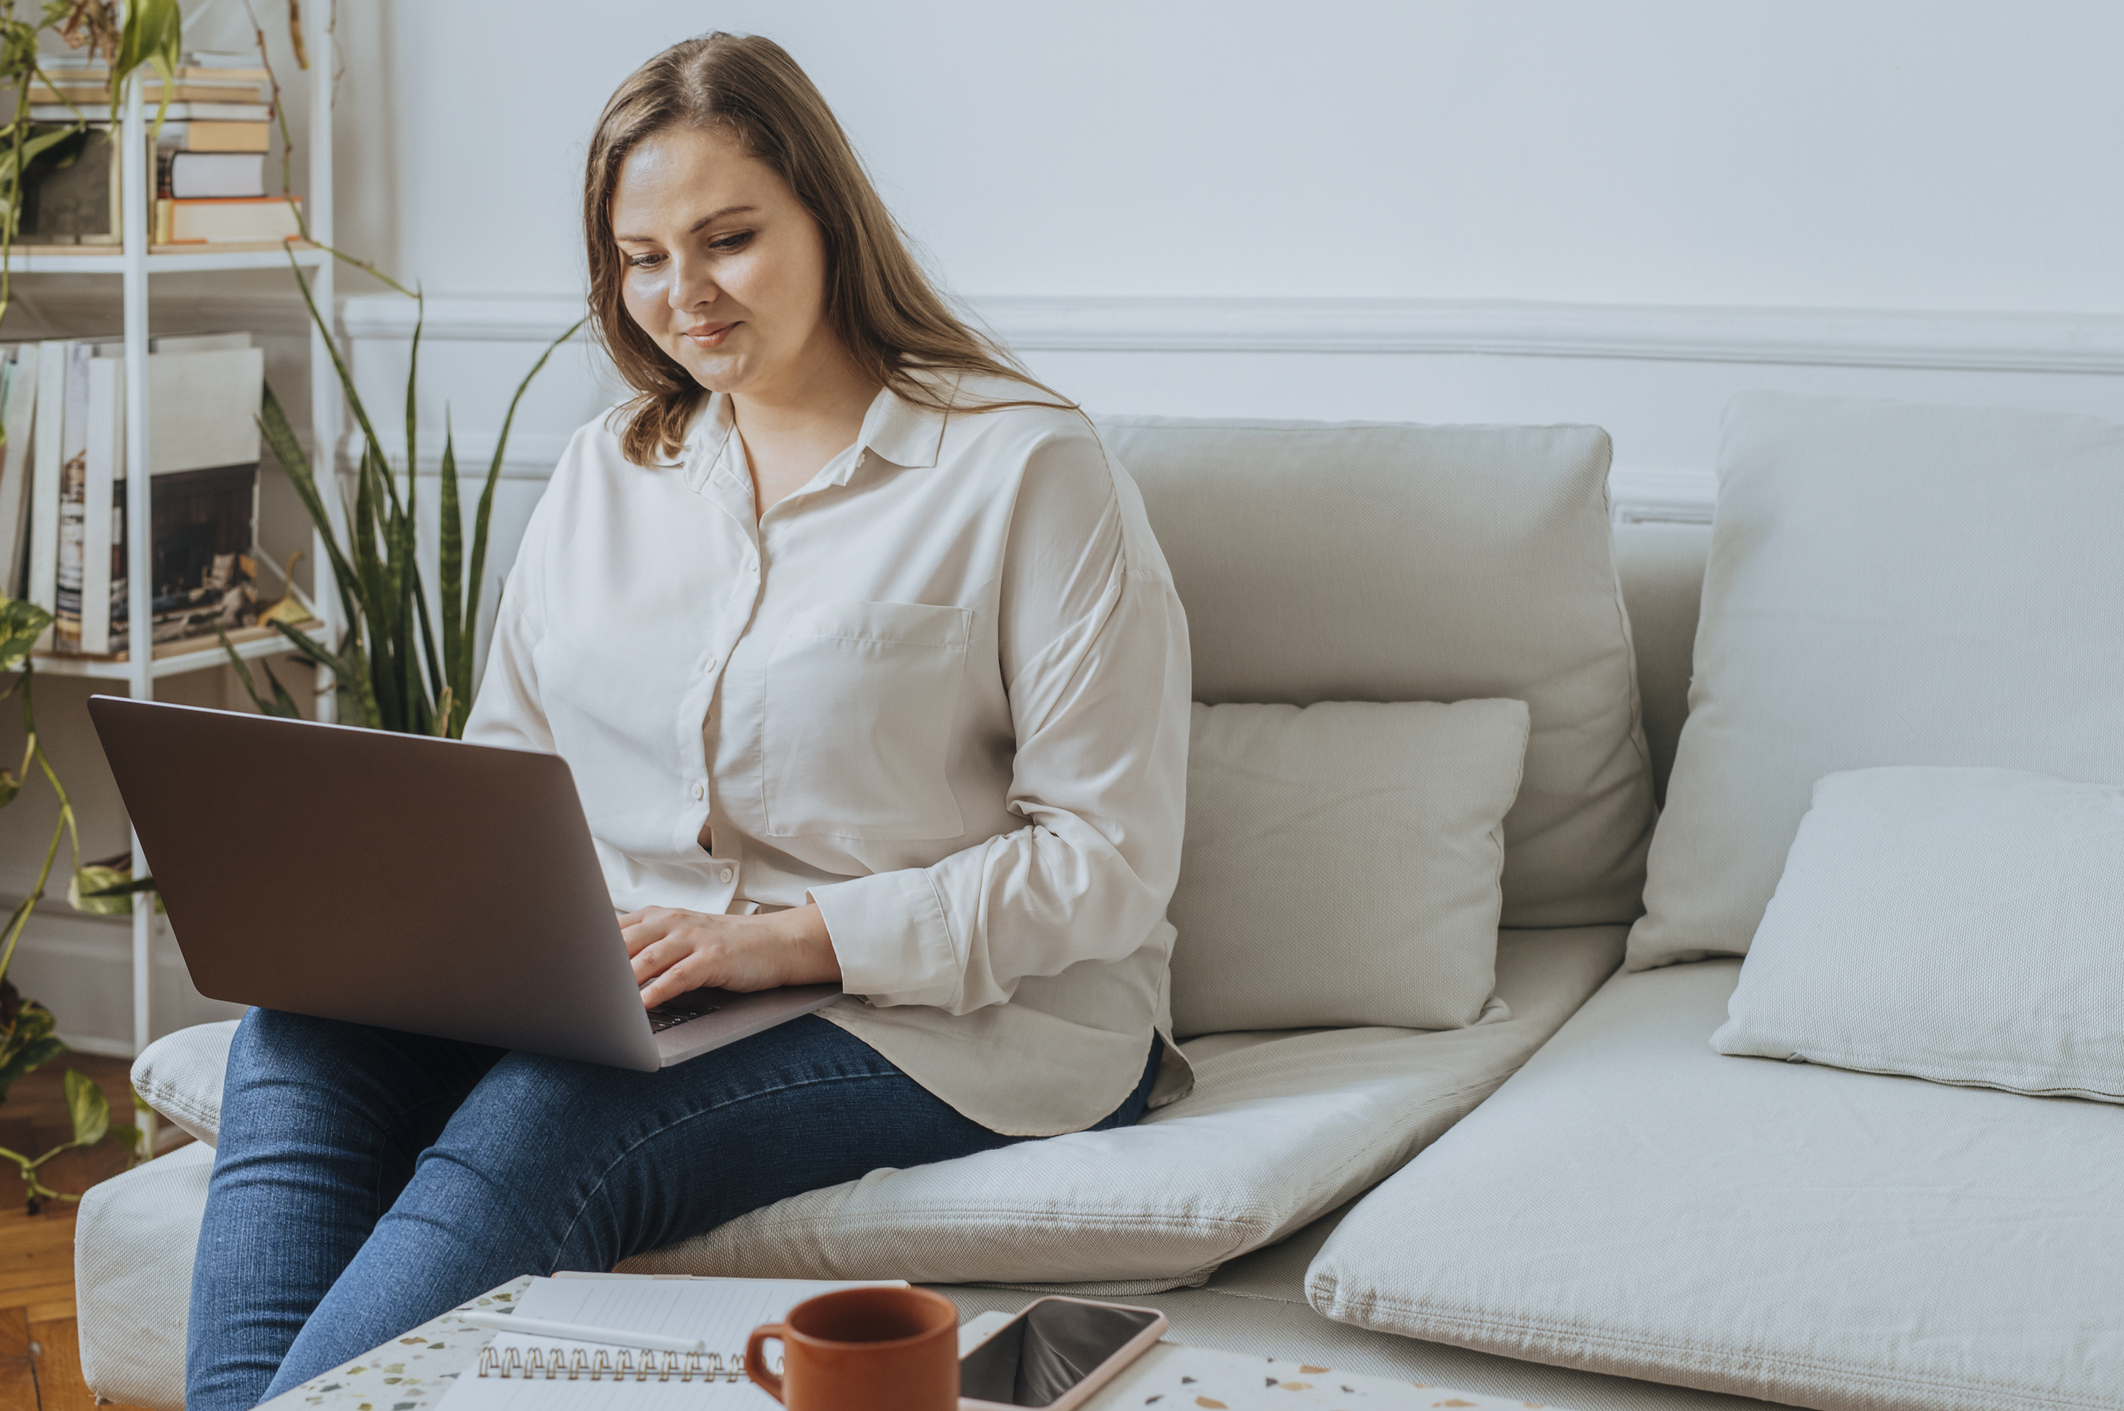 Smiling Caucasian businesswoman sitting on a sofa and working on her laptop in the living room.